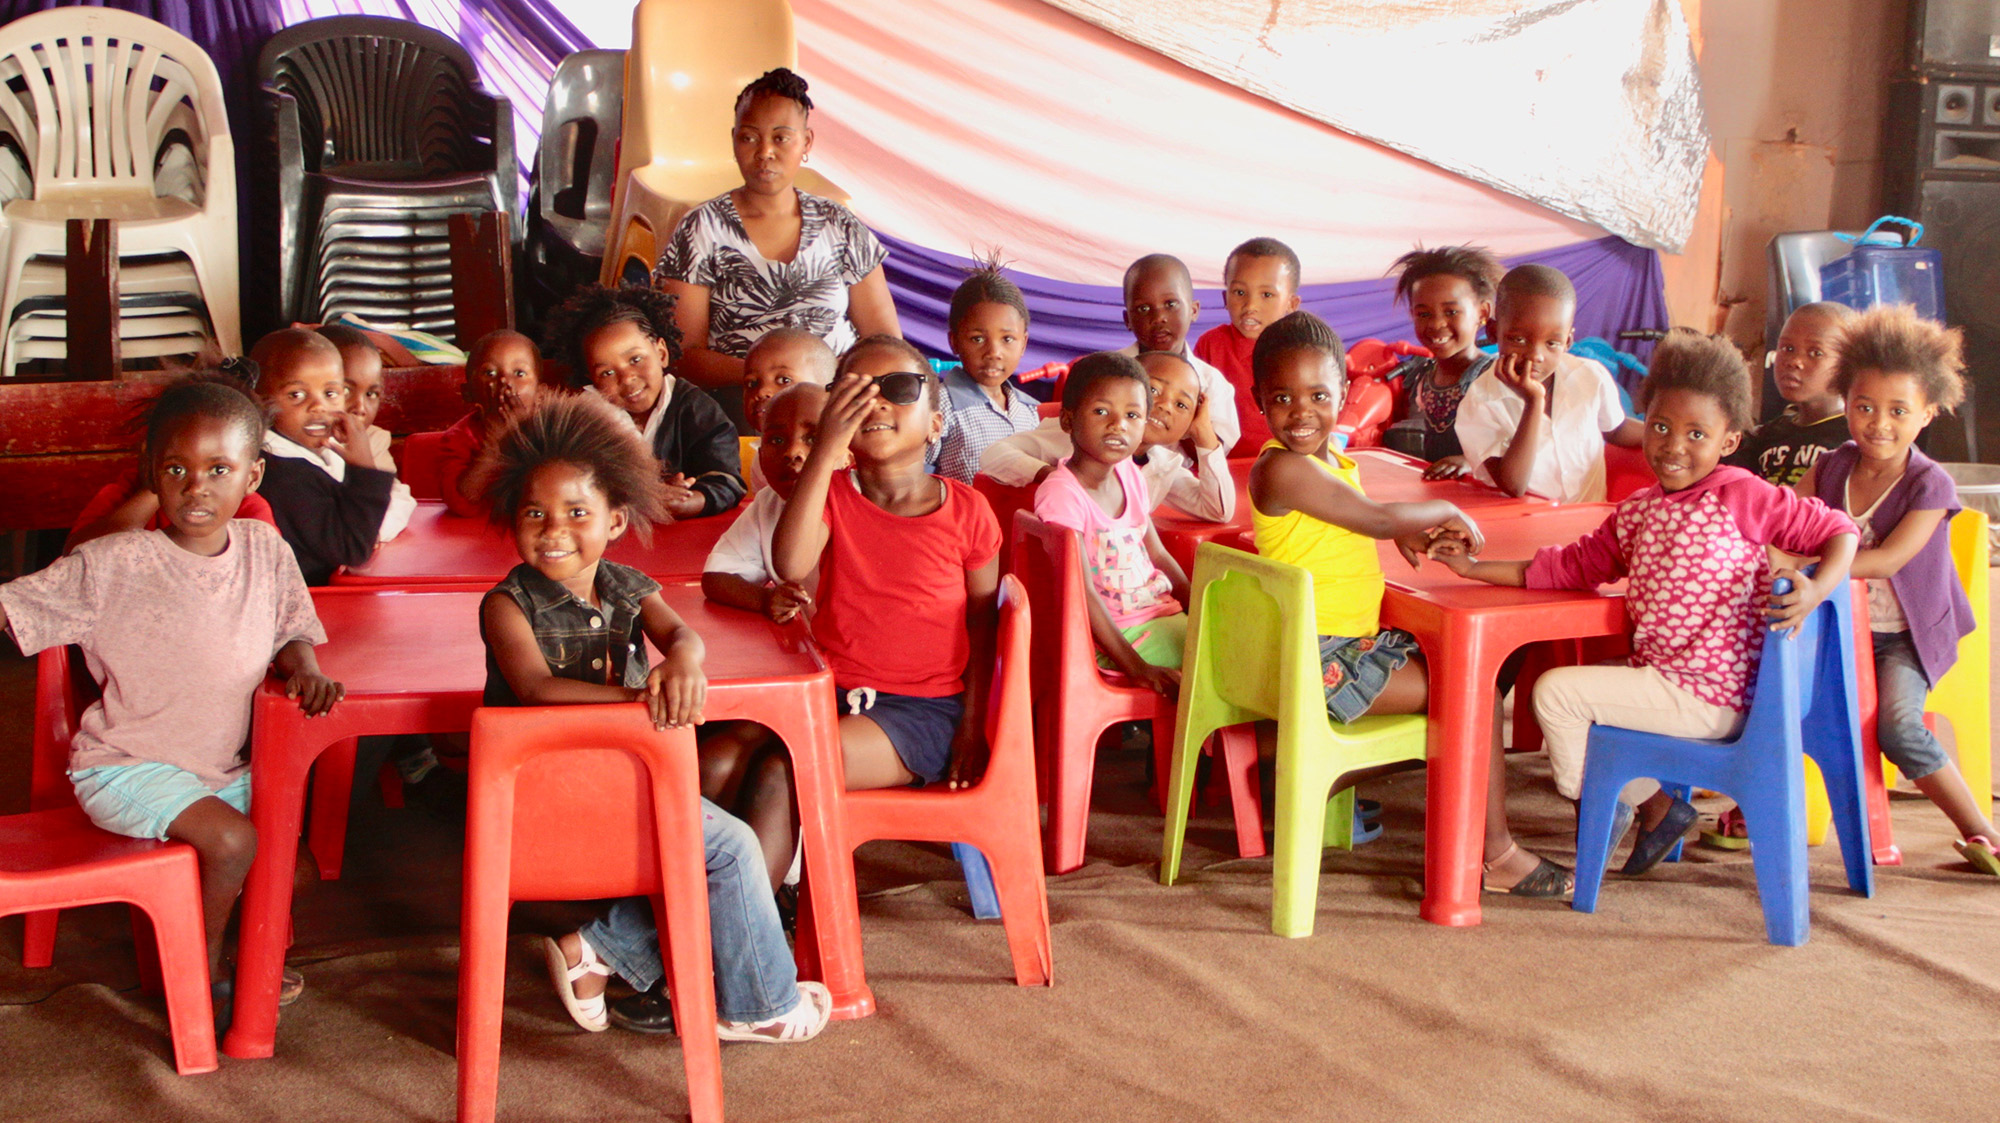 Children at a day care